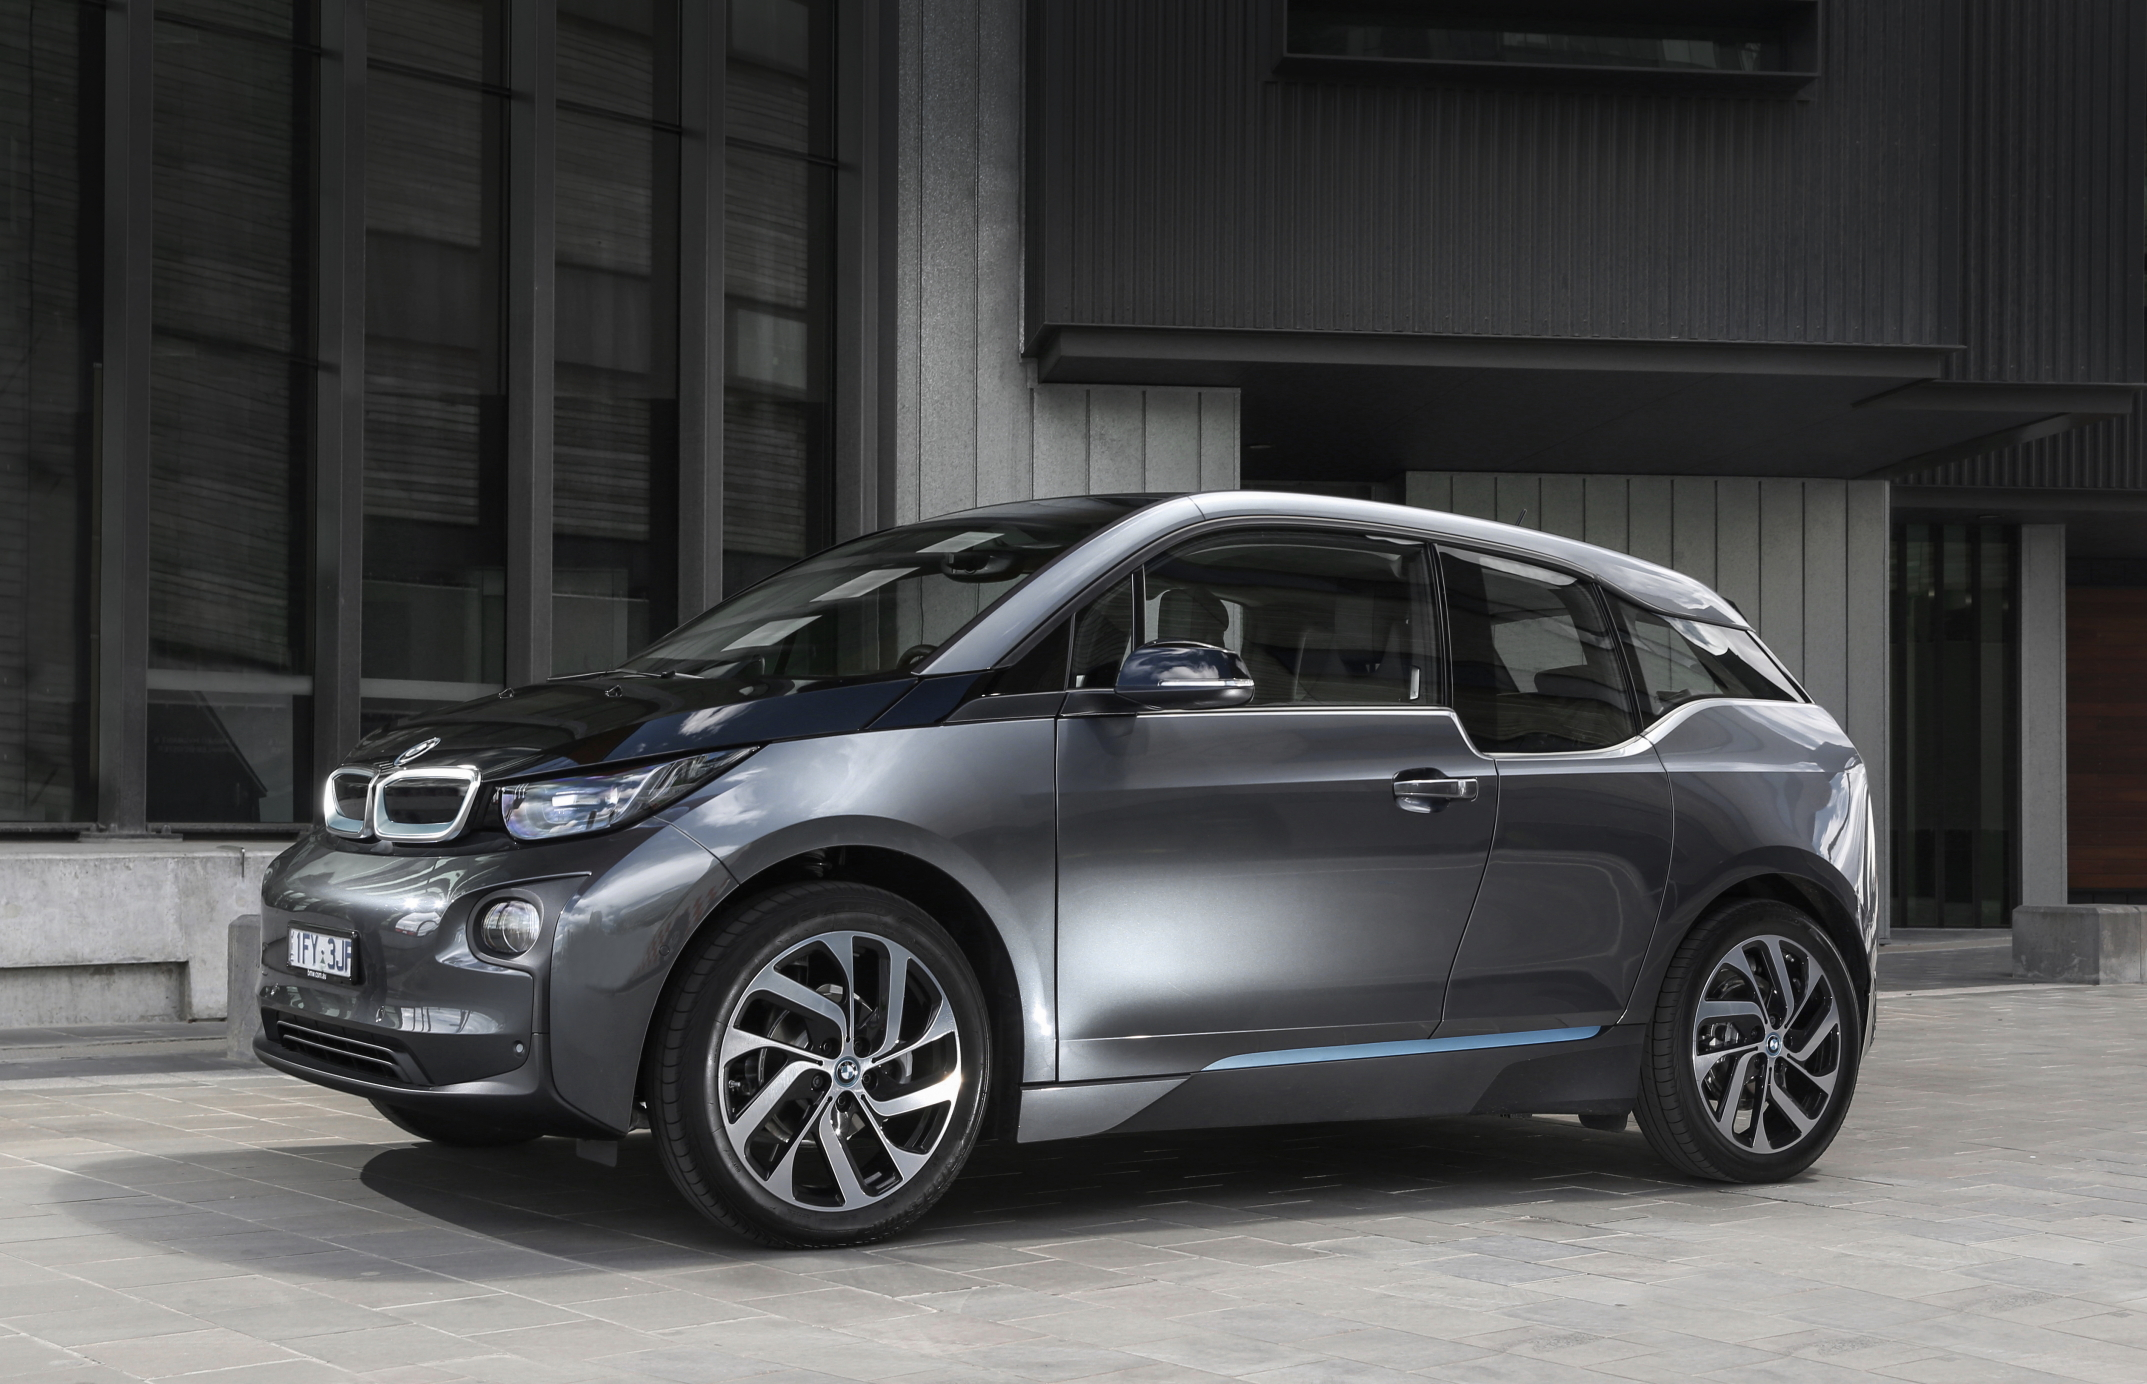 2017 bmw i3 94ah review photos caradvice. Black Bedroom Furniture Sets. Home Design Ideas